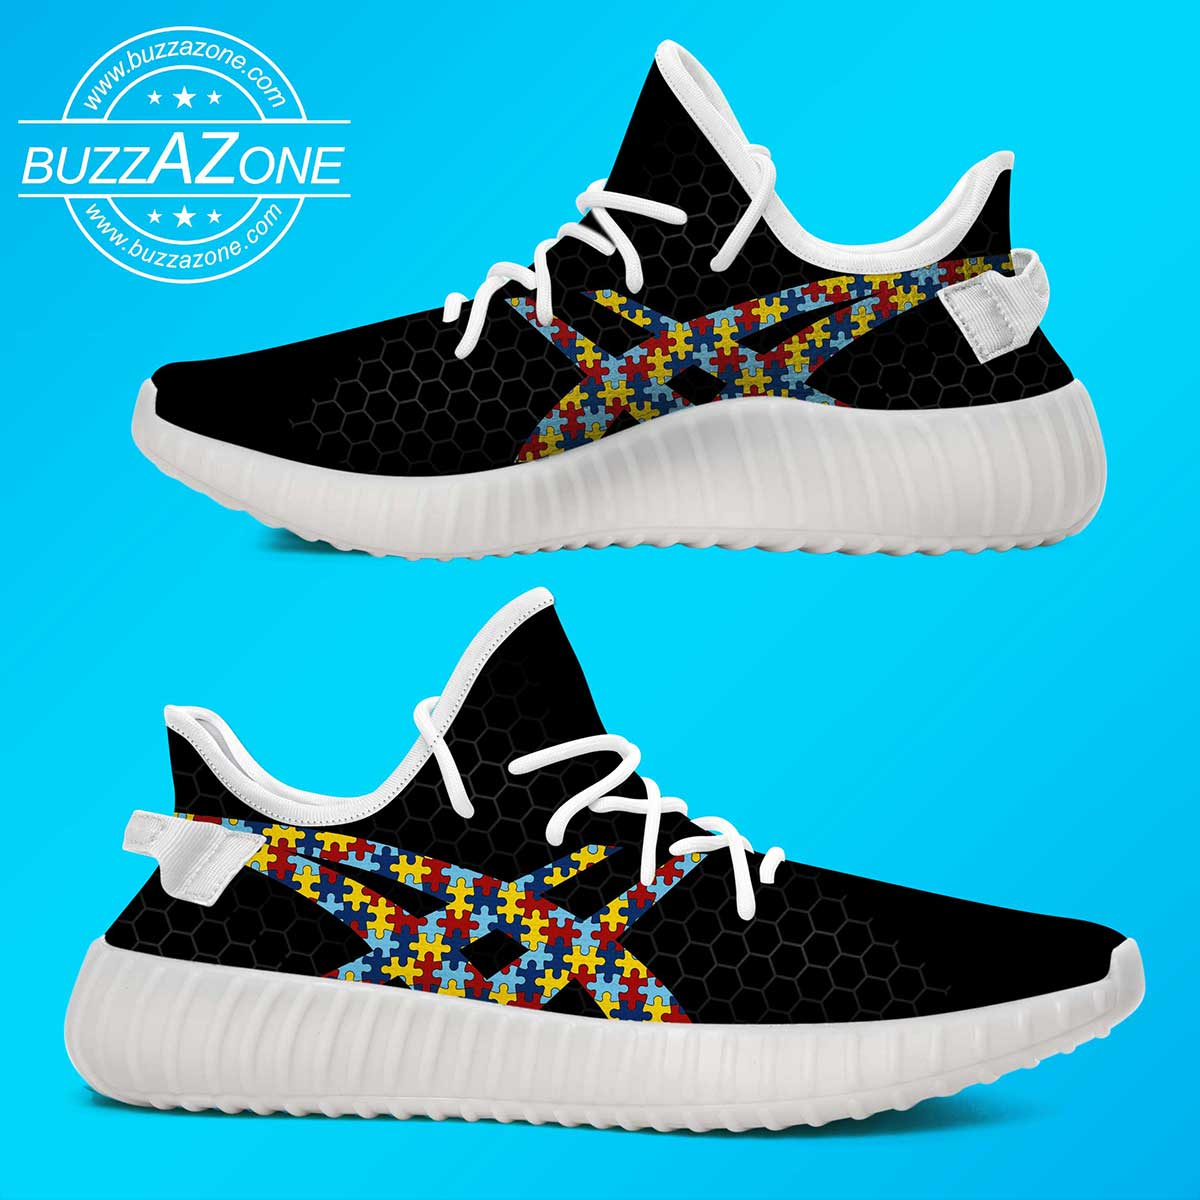 Autism awareness custom yeezy sneakers 2